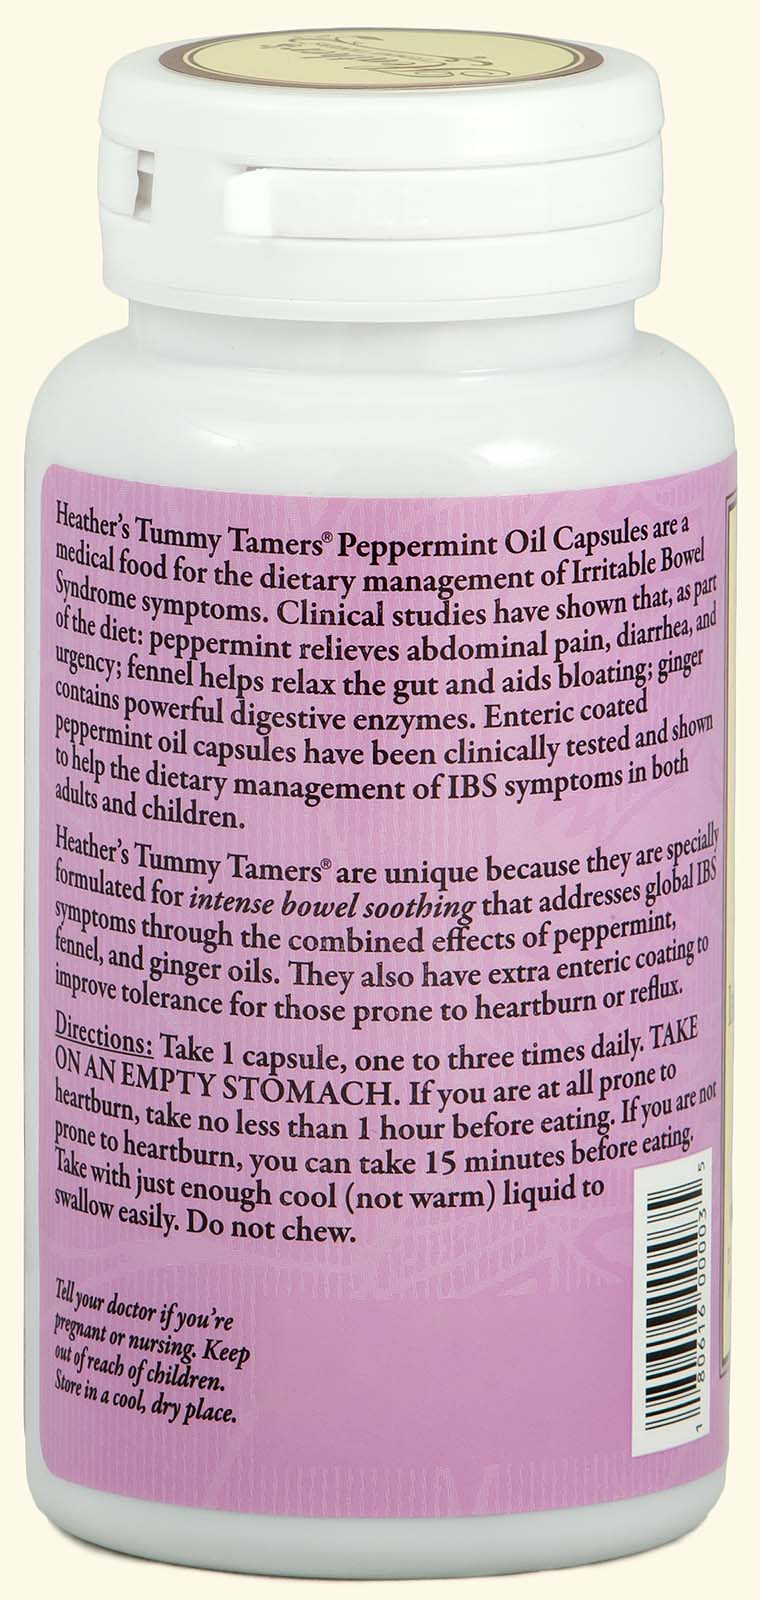 Tummy Tamers Peppermint Oil Caps (2 bottles)